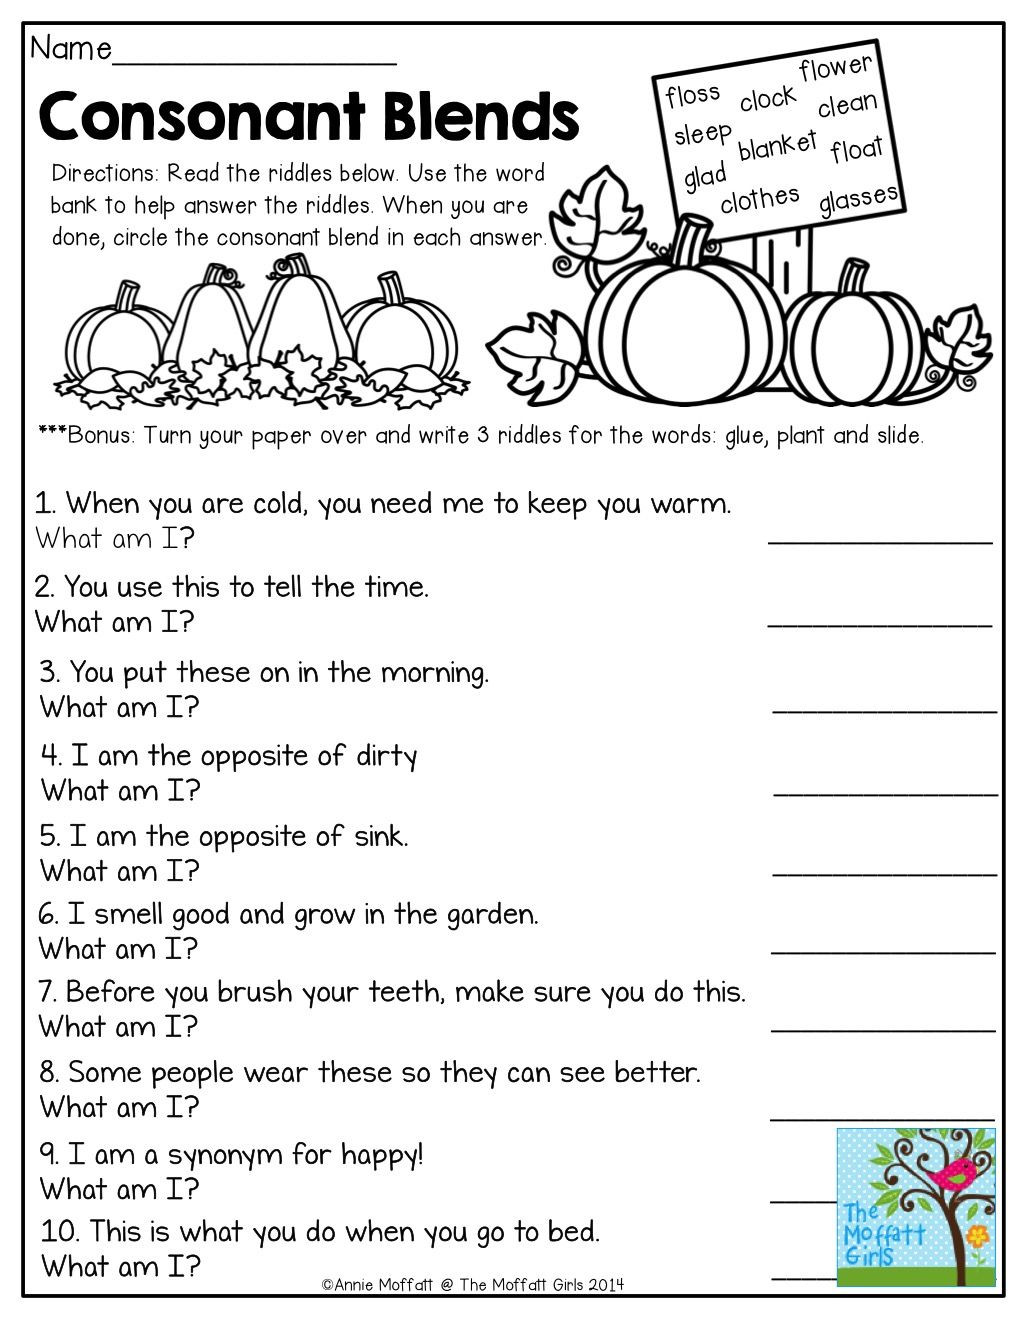 stunning 2nd gradehonics worksheets consonant blends mystery words read the clues and write 3rd free